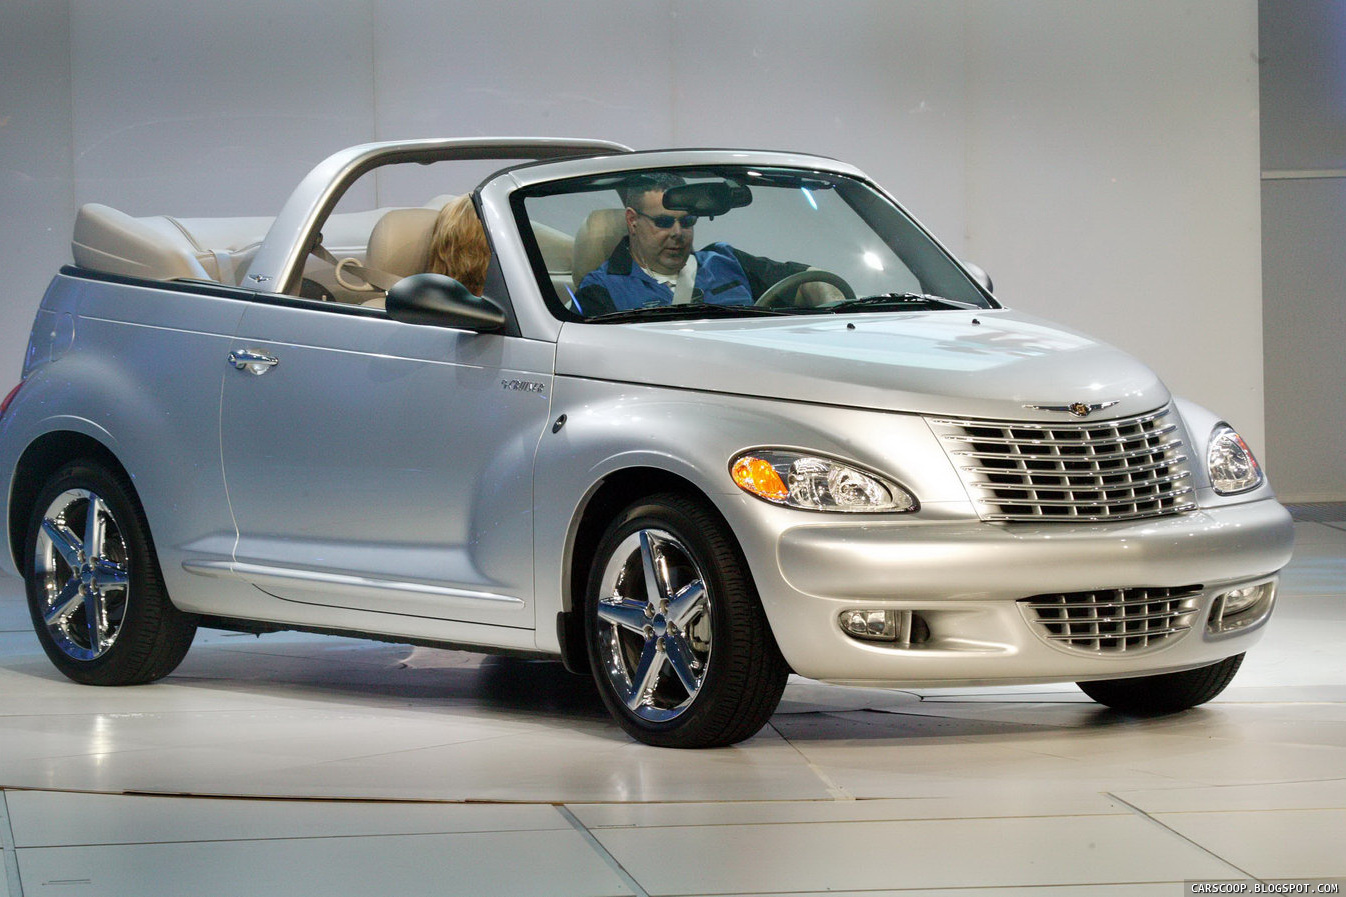 chrysler bids farewell to iconic pt cruiser last model. Black Bedroom Furniture Sets. Home Design Ideas